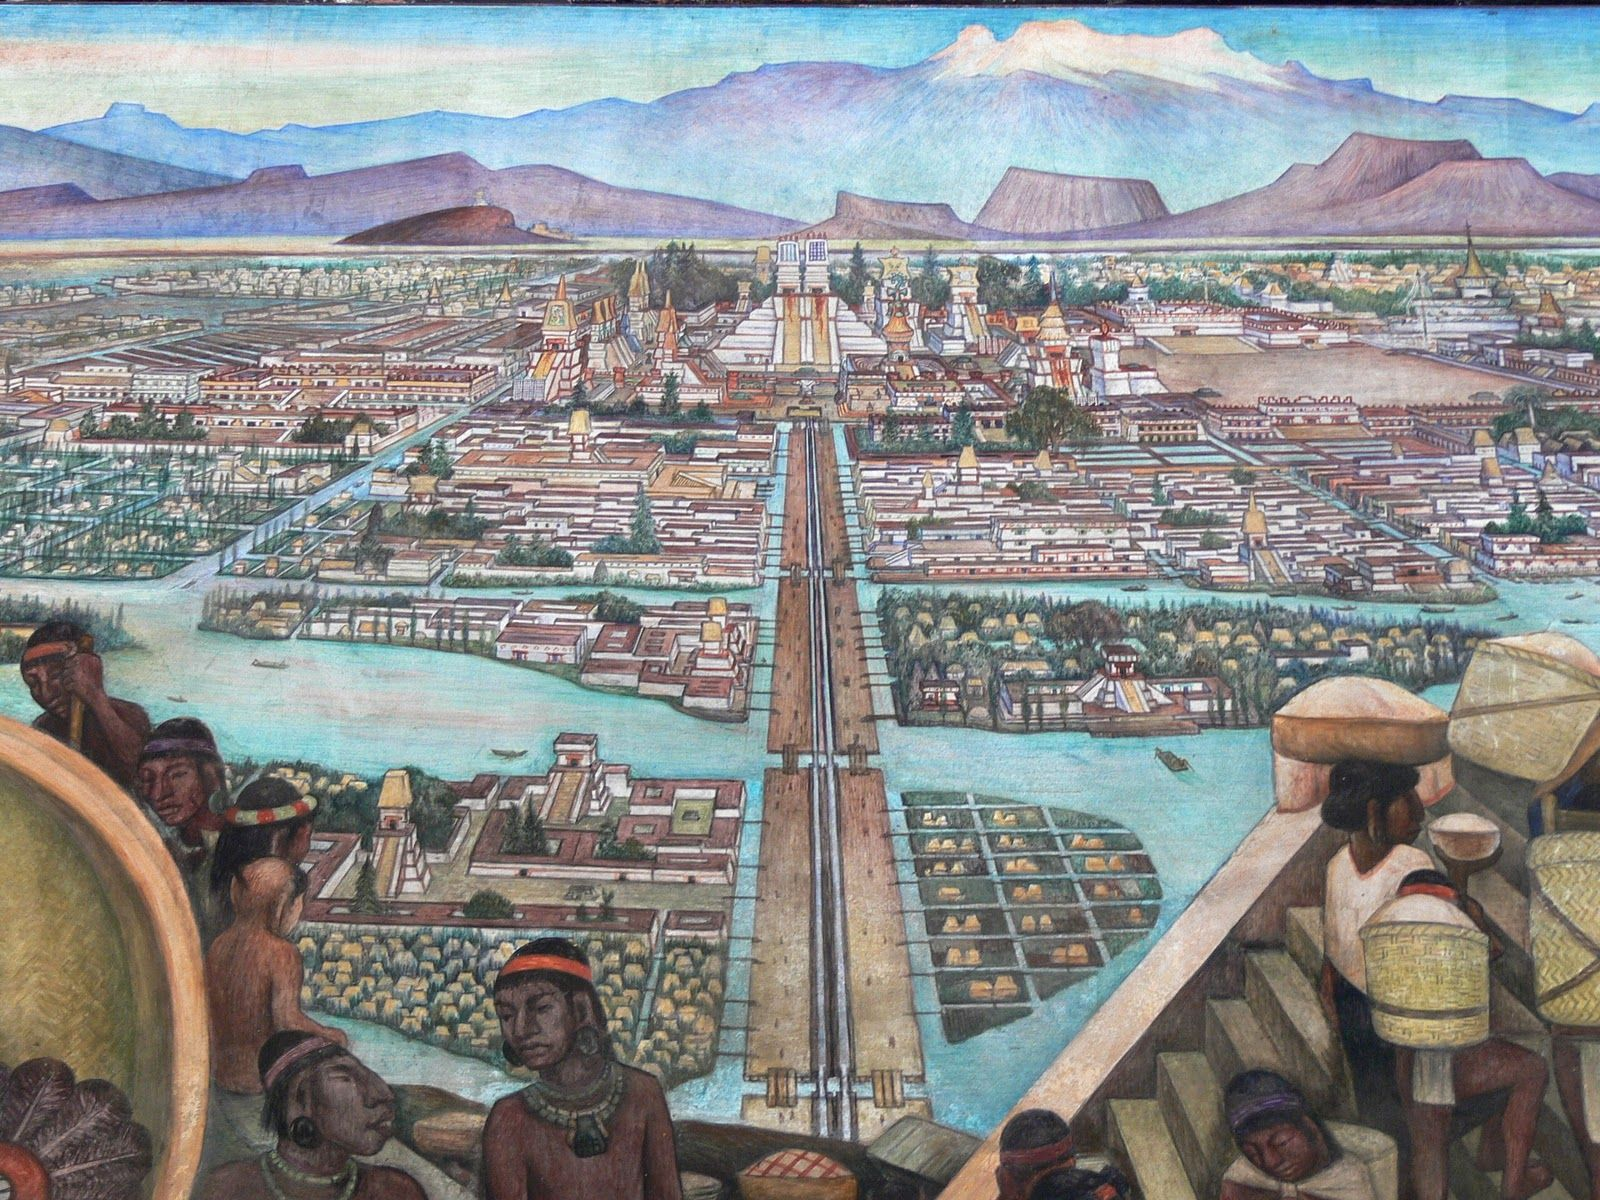 Rendering of Tenochtitlan in its prime.